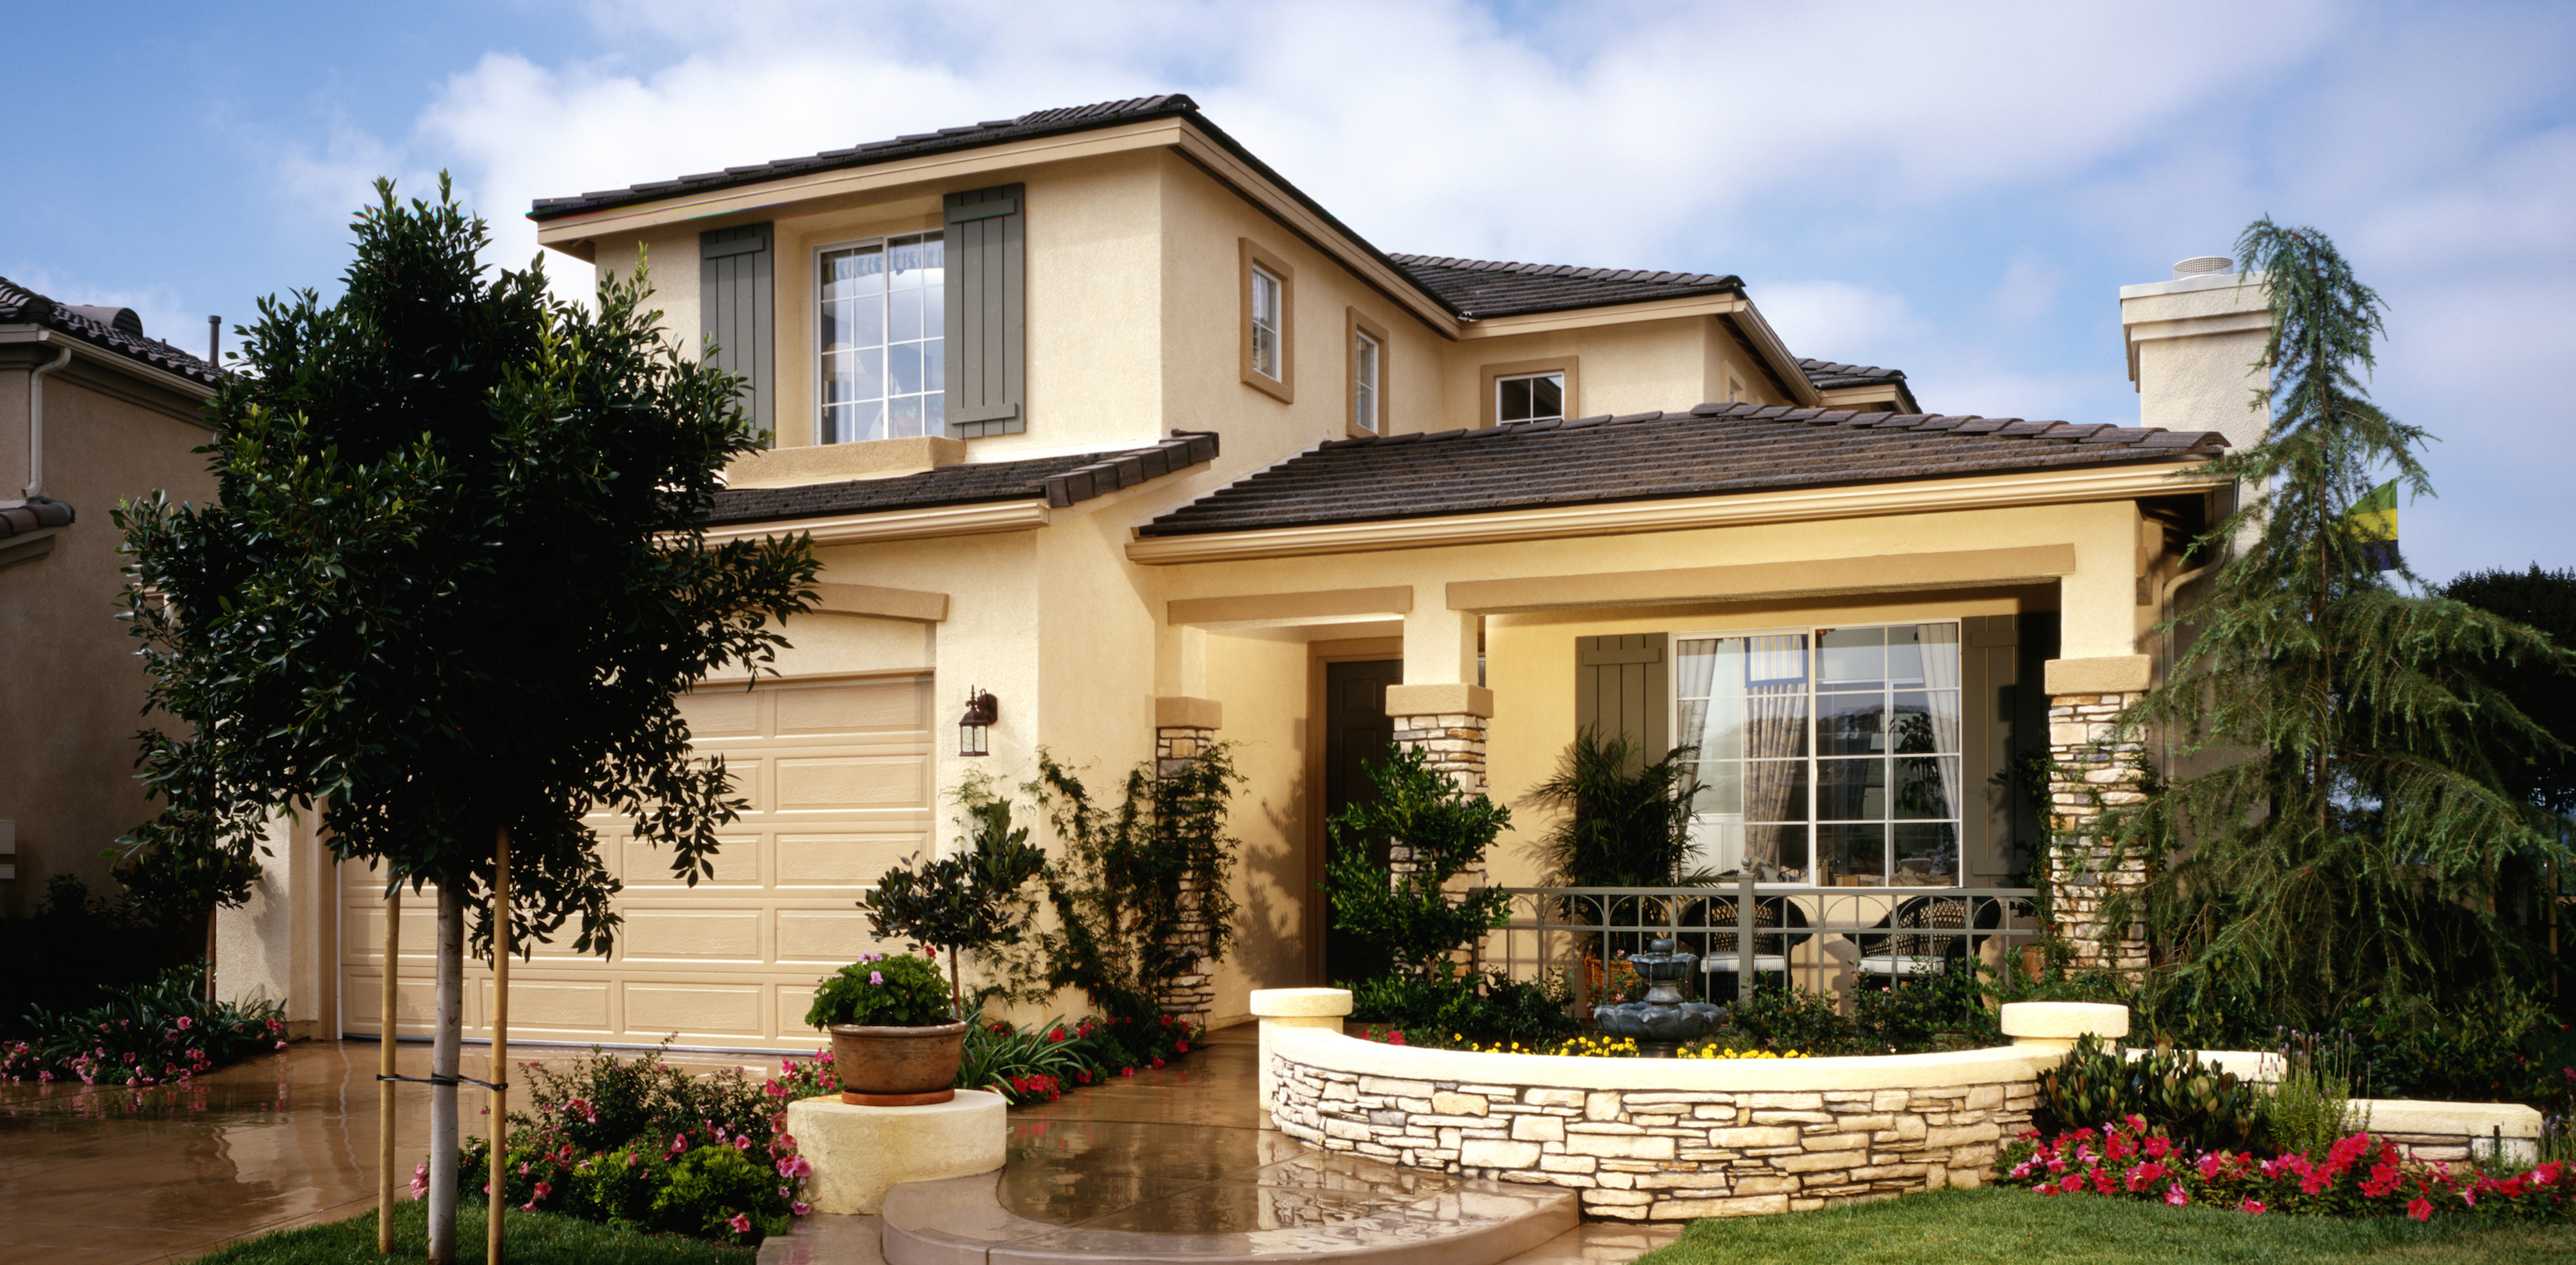 San diego real estate san diego homes for sale for Home tanner